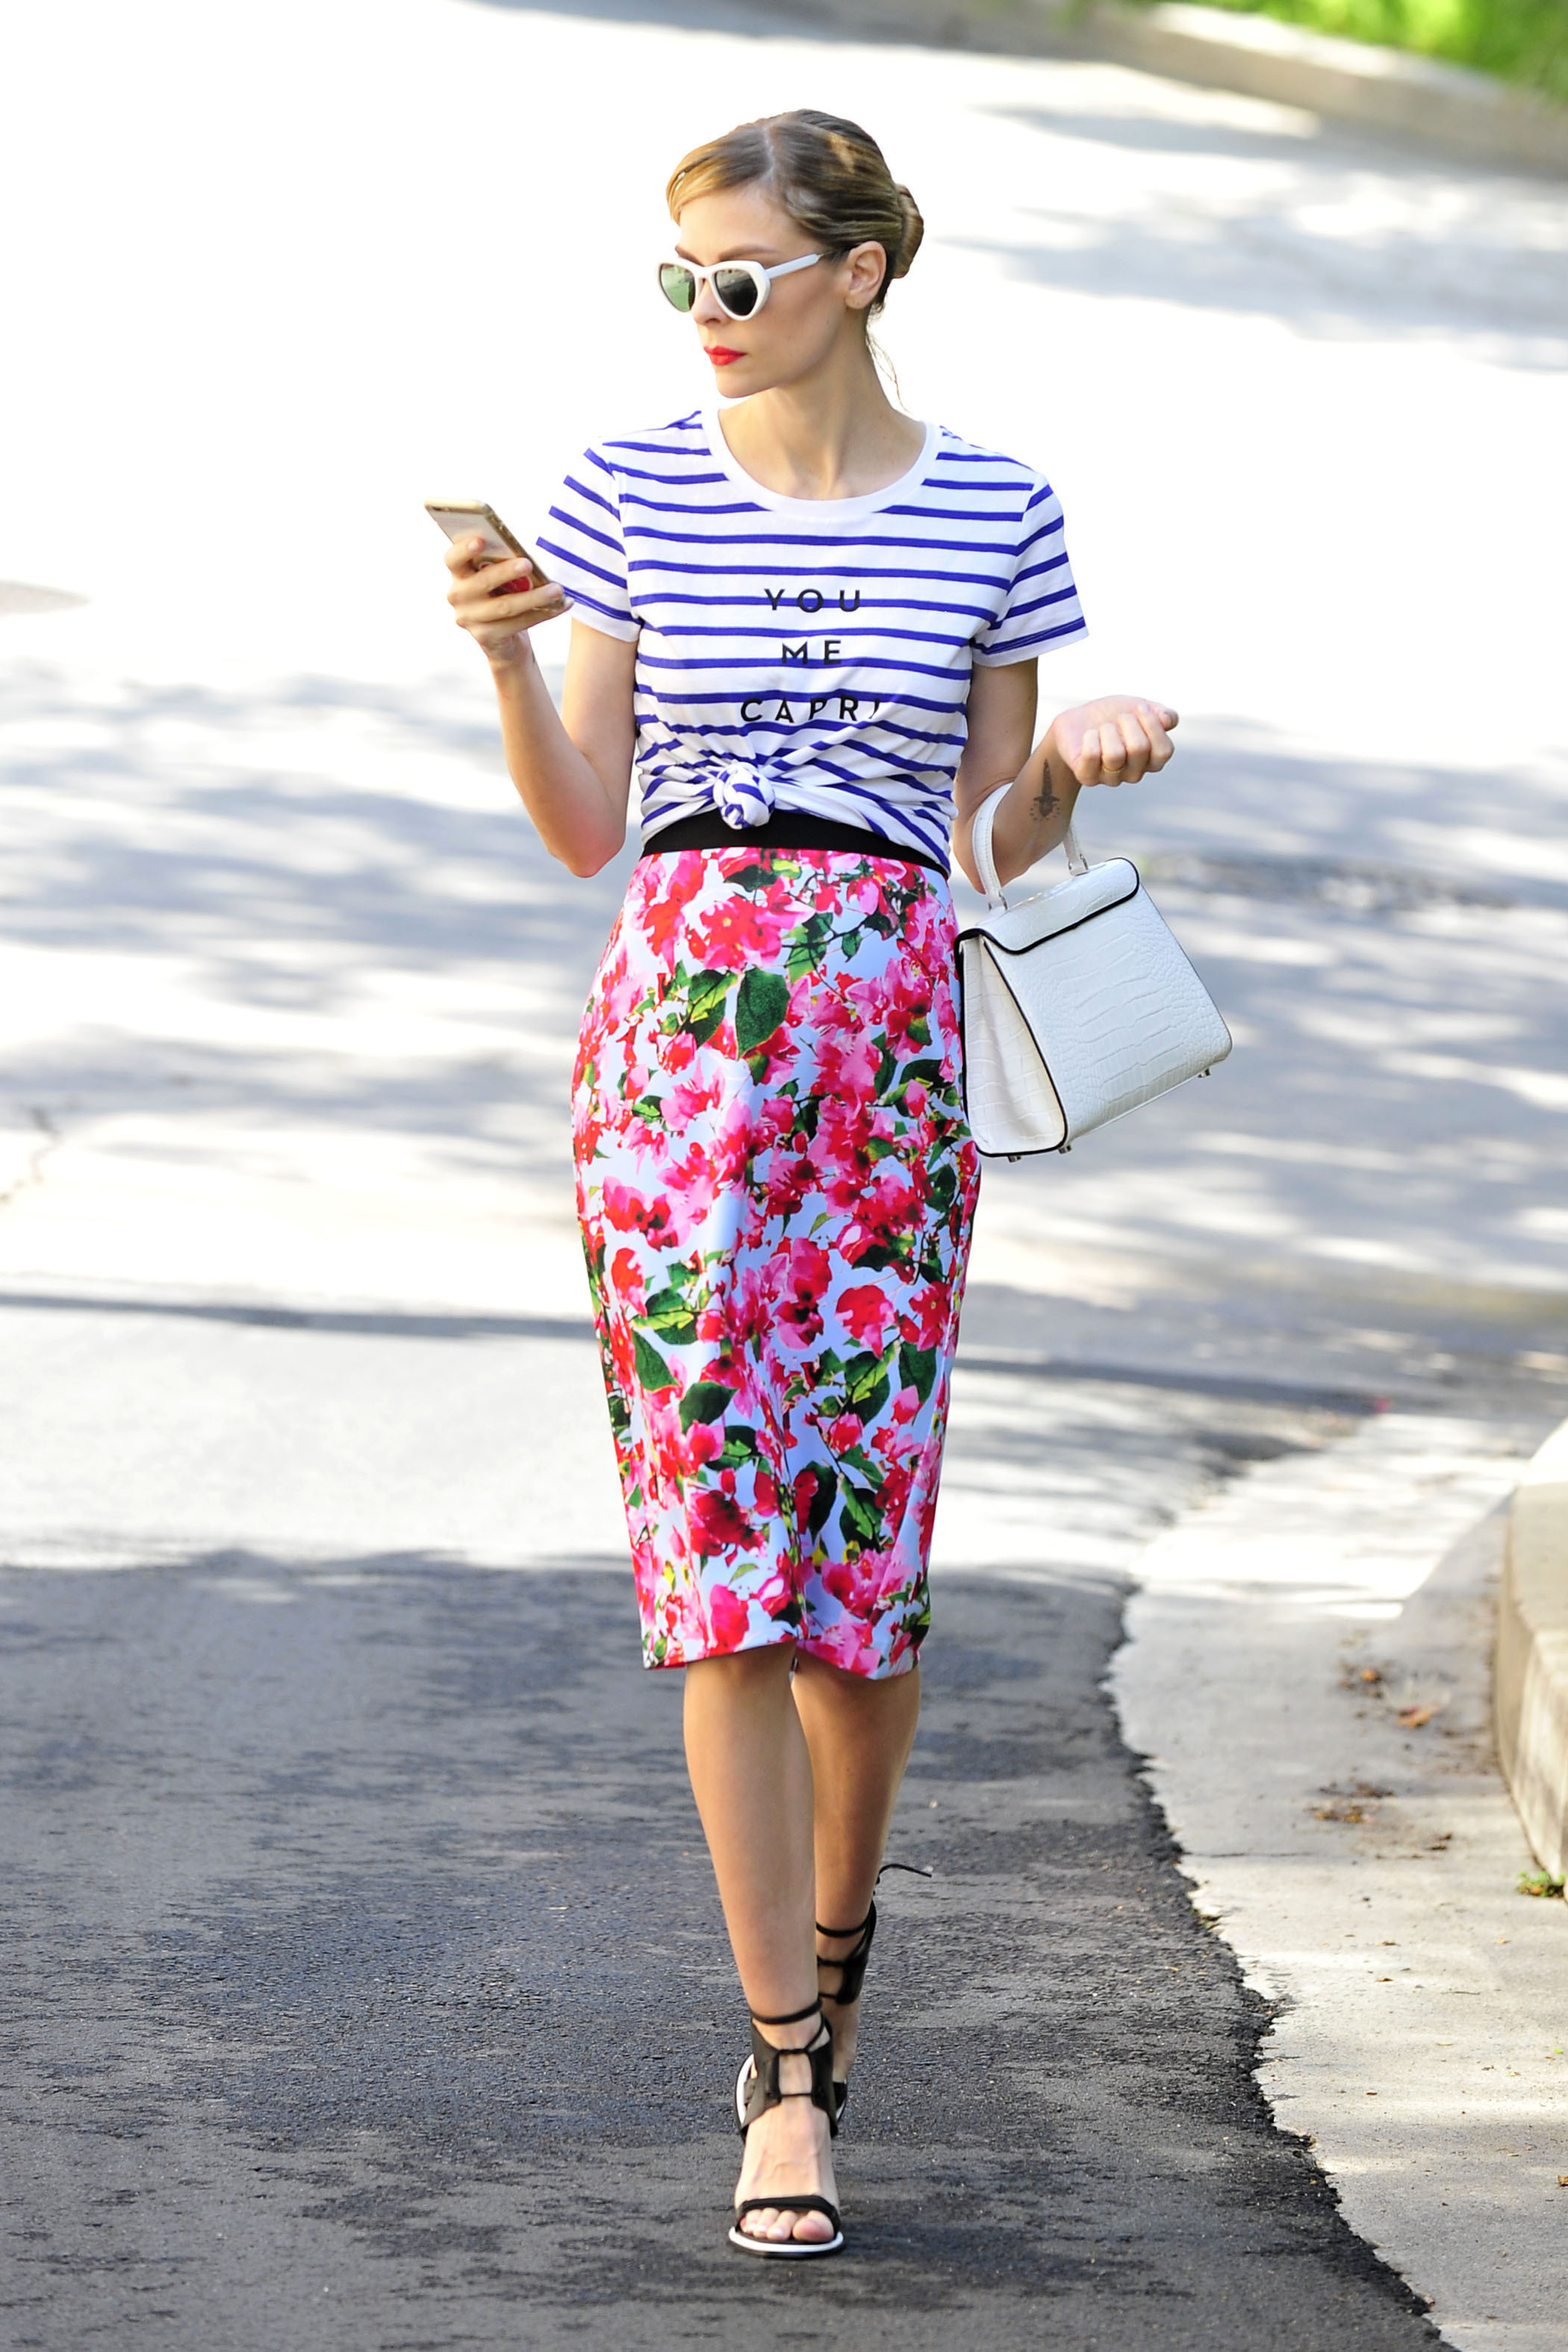 MILLY for DesigNation You Me Capri Striped Tee, $40; and Bougainvillea Skirt, $50; at Kohl's